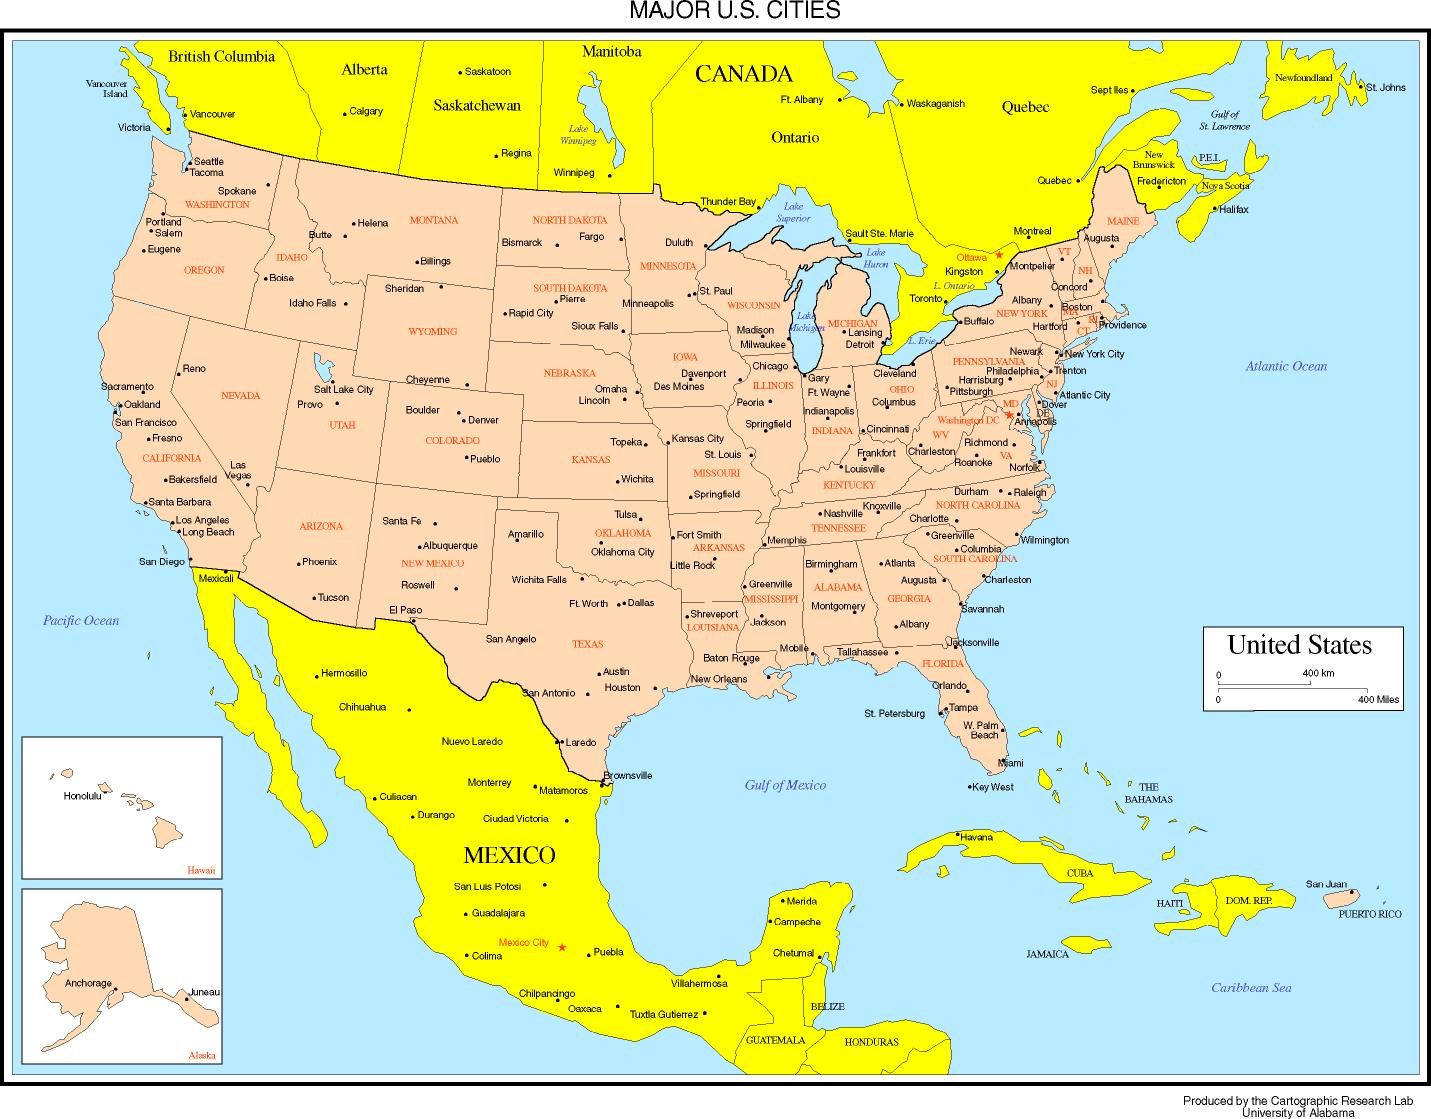 Maps Of The United States With Cities | casami